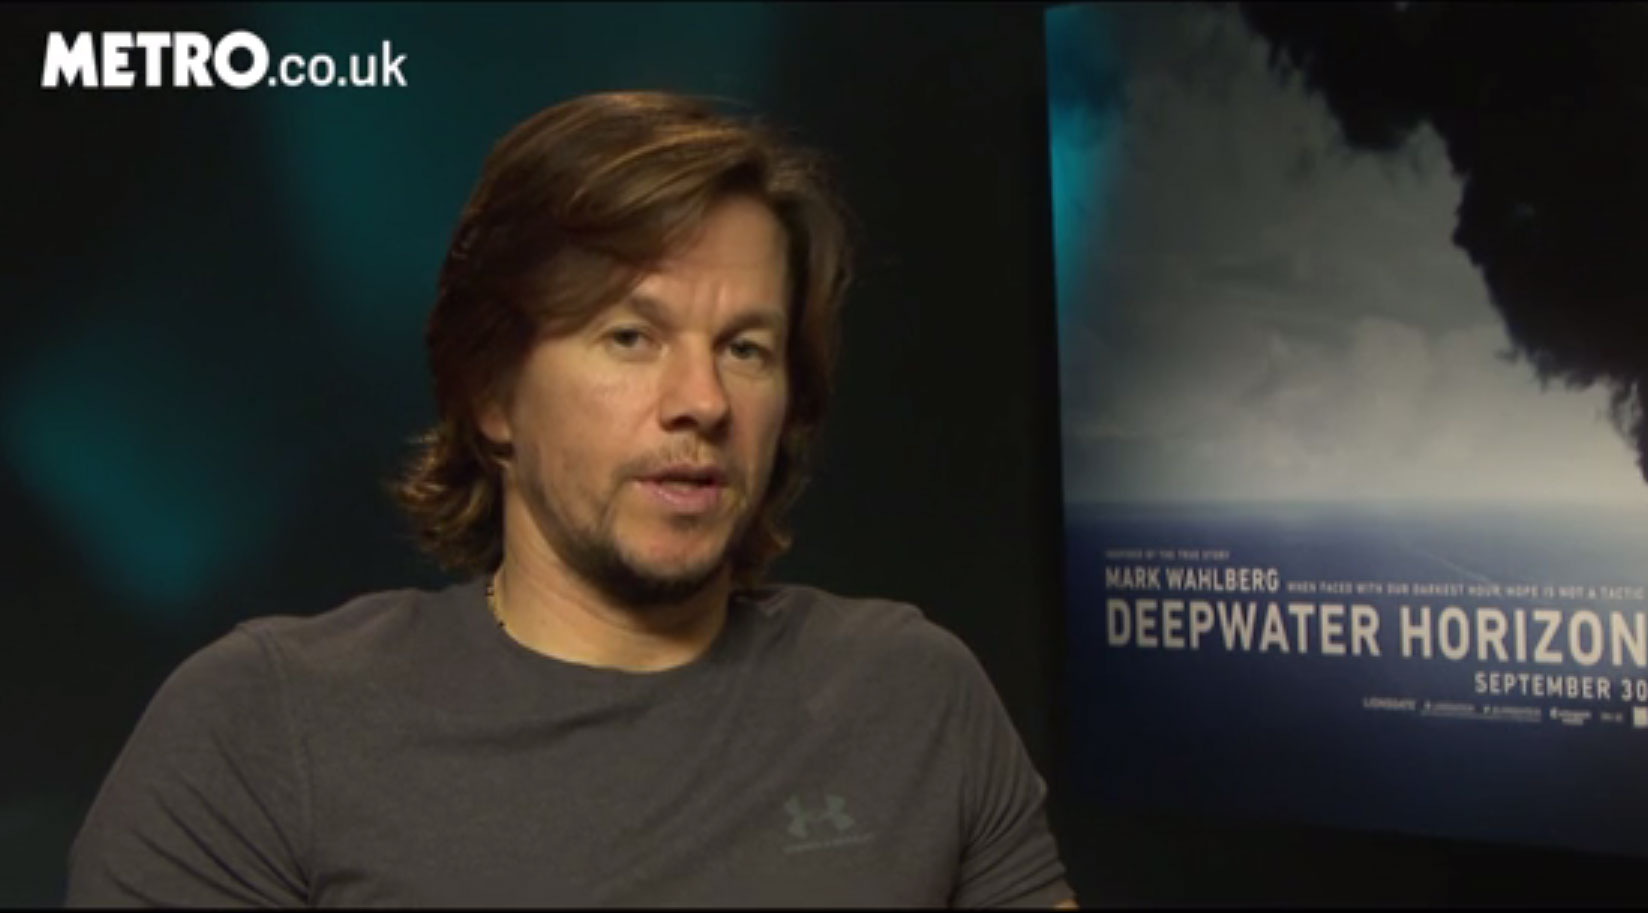 Mark Wahlberg has got a very specific message for BP after the Deepwater Horizon disaster